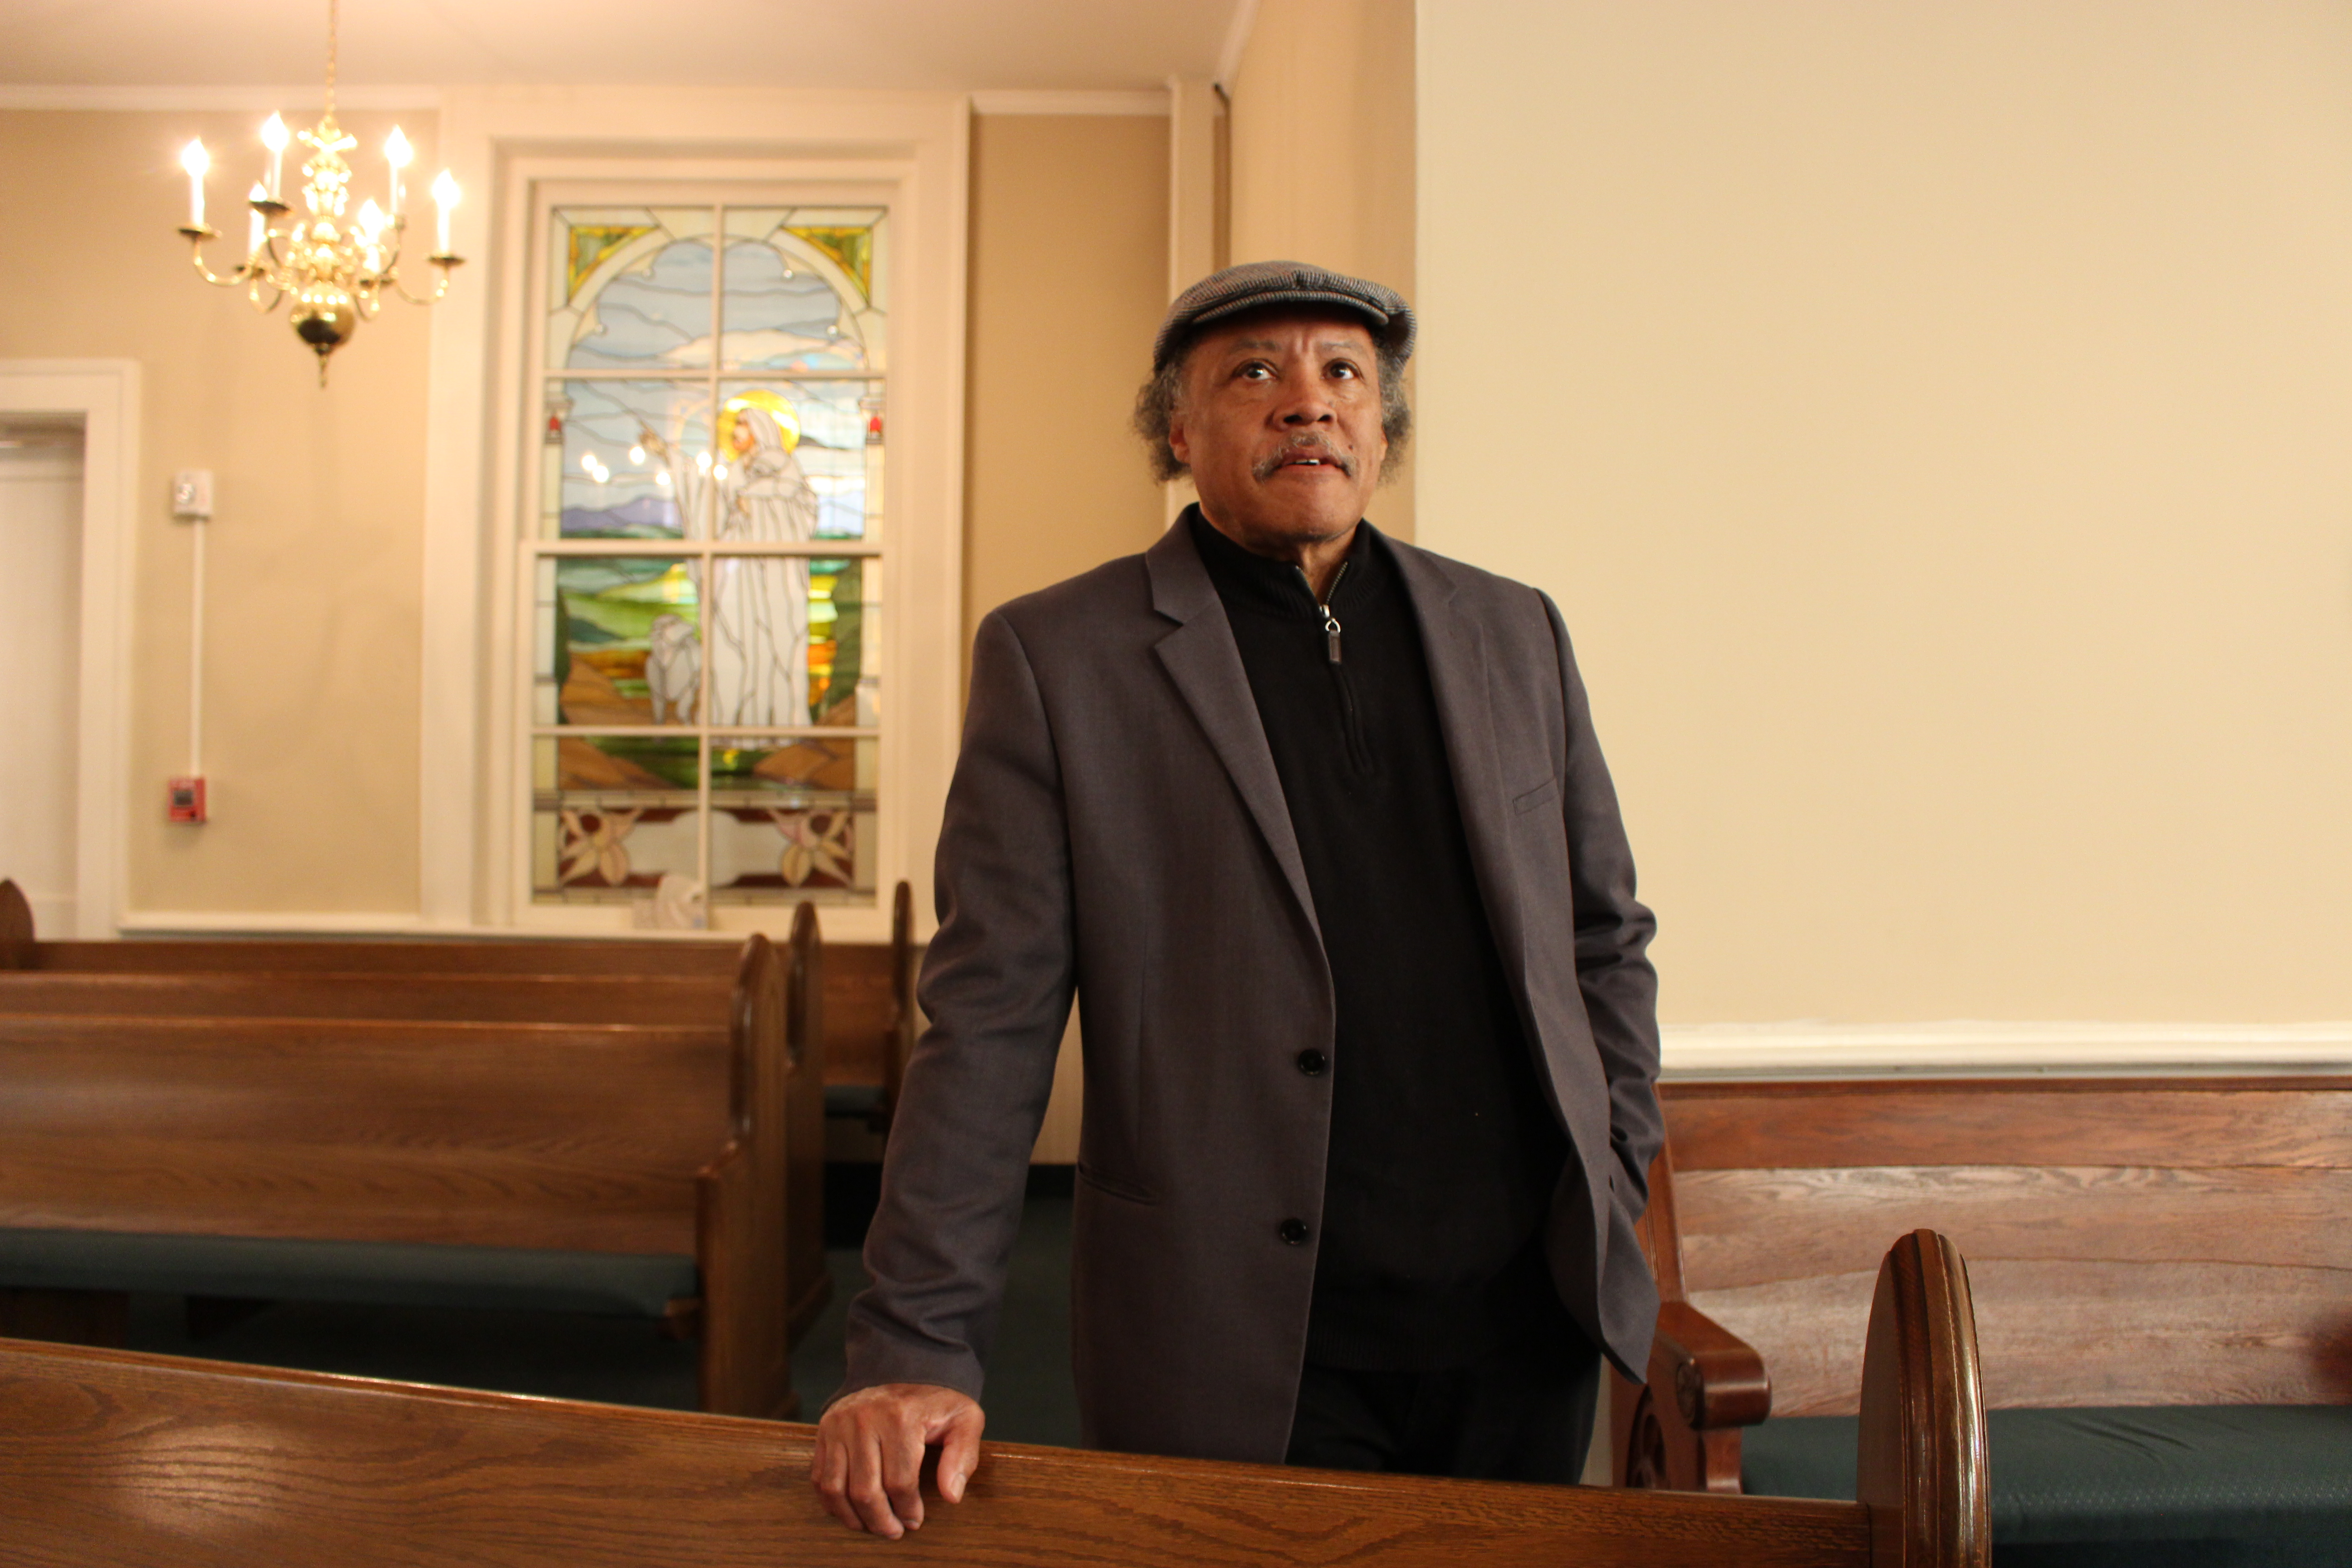 Elder Roy Harris stands in his church, Mt Zion Missionary Baptist Church for a portrait. He rests his right hand on a pew and looks beyond the camera towards the front of the worship hall. He is wearing a grey suit, black sweater, and a grey flat cap hat.